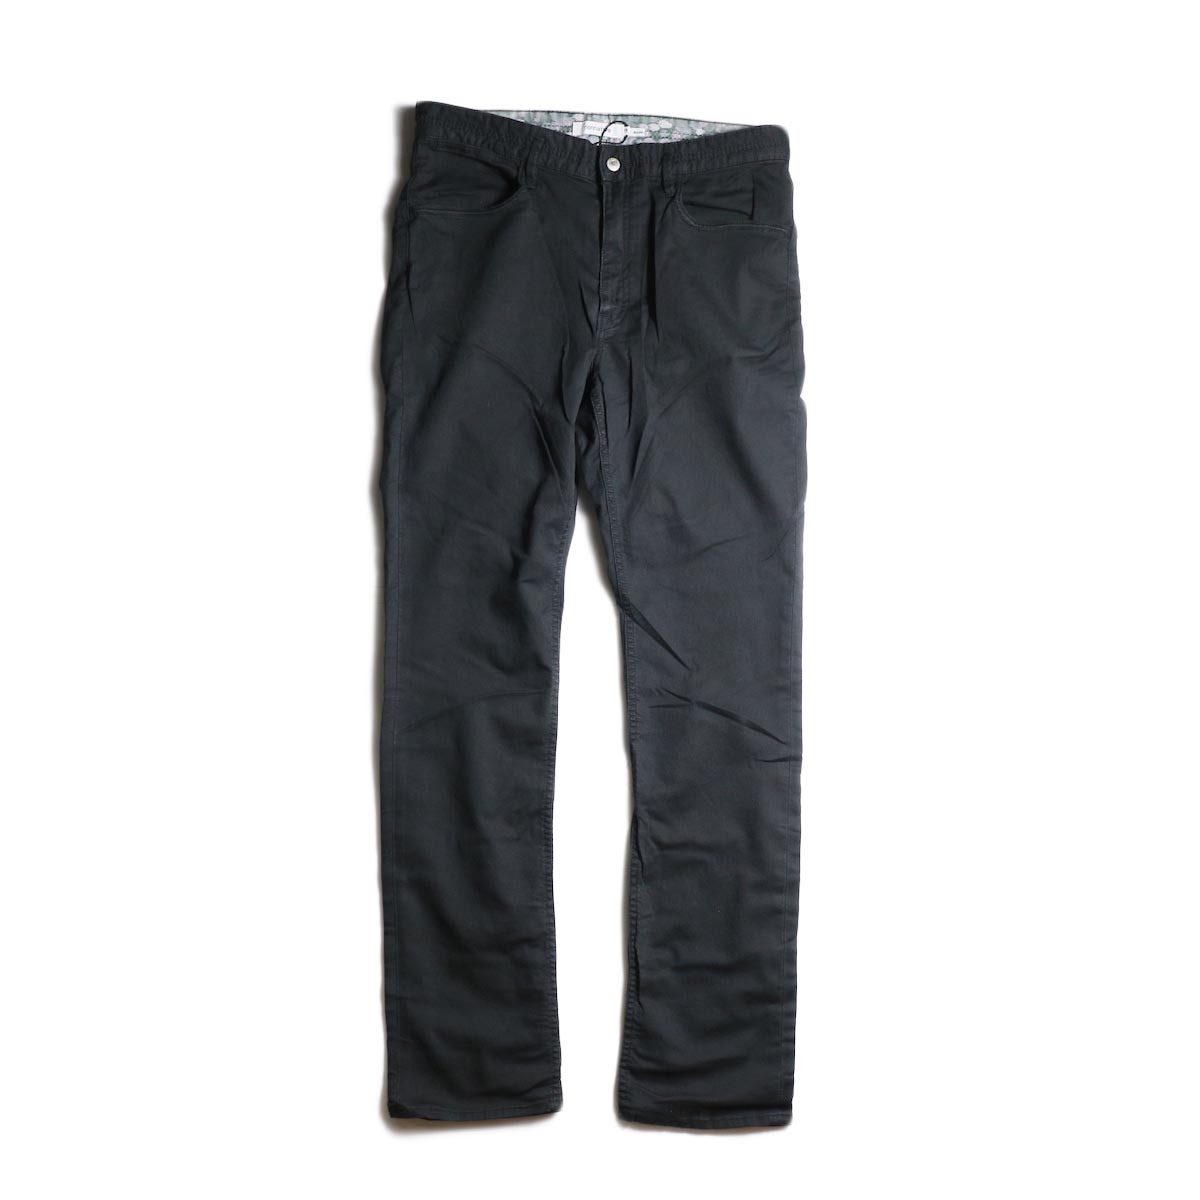 nonnative / DWELLER 5P JEANS DROPPED FIT C/P JEAN CORD STRETCH (Black)